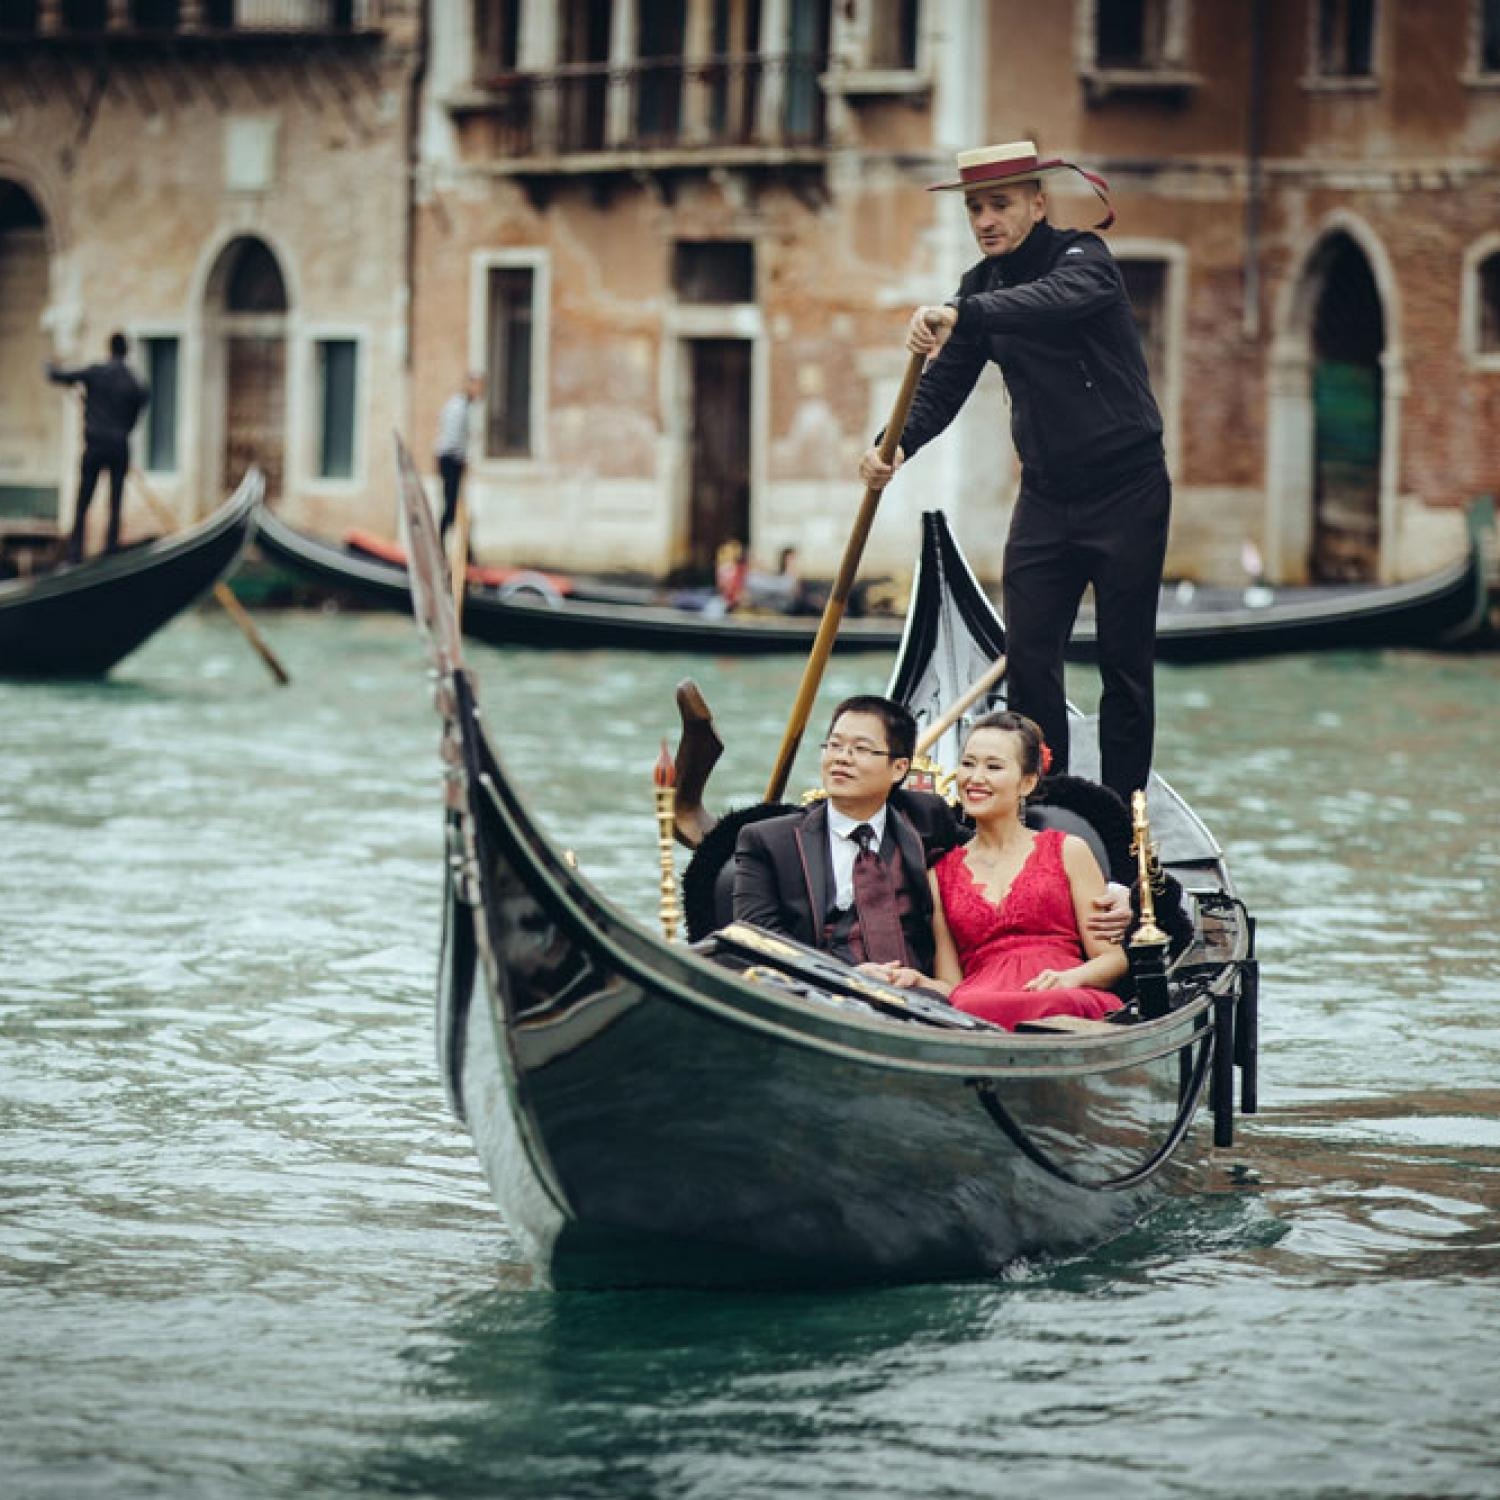 威尼斯 Couple on gondola in Venice